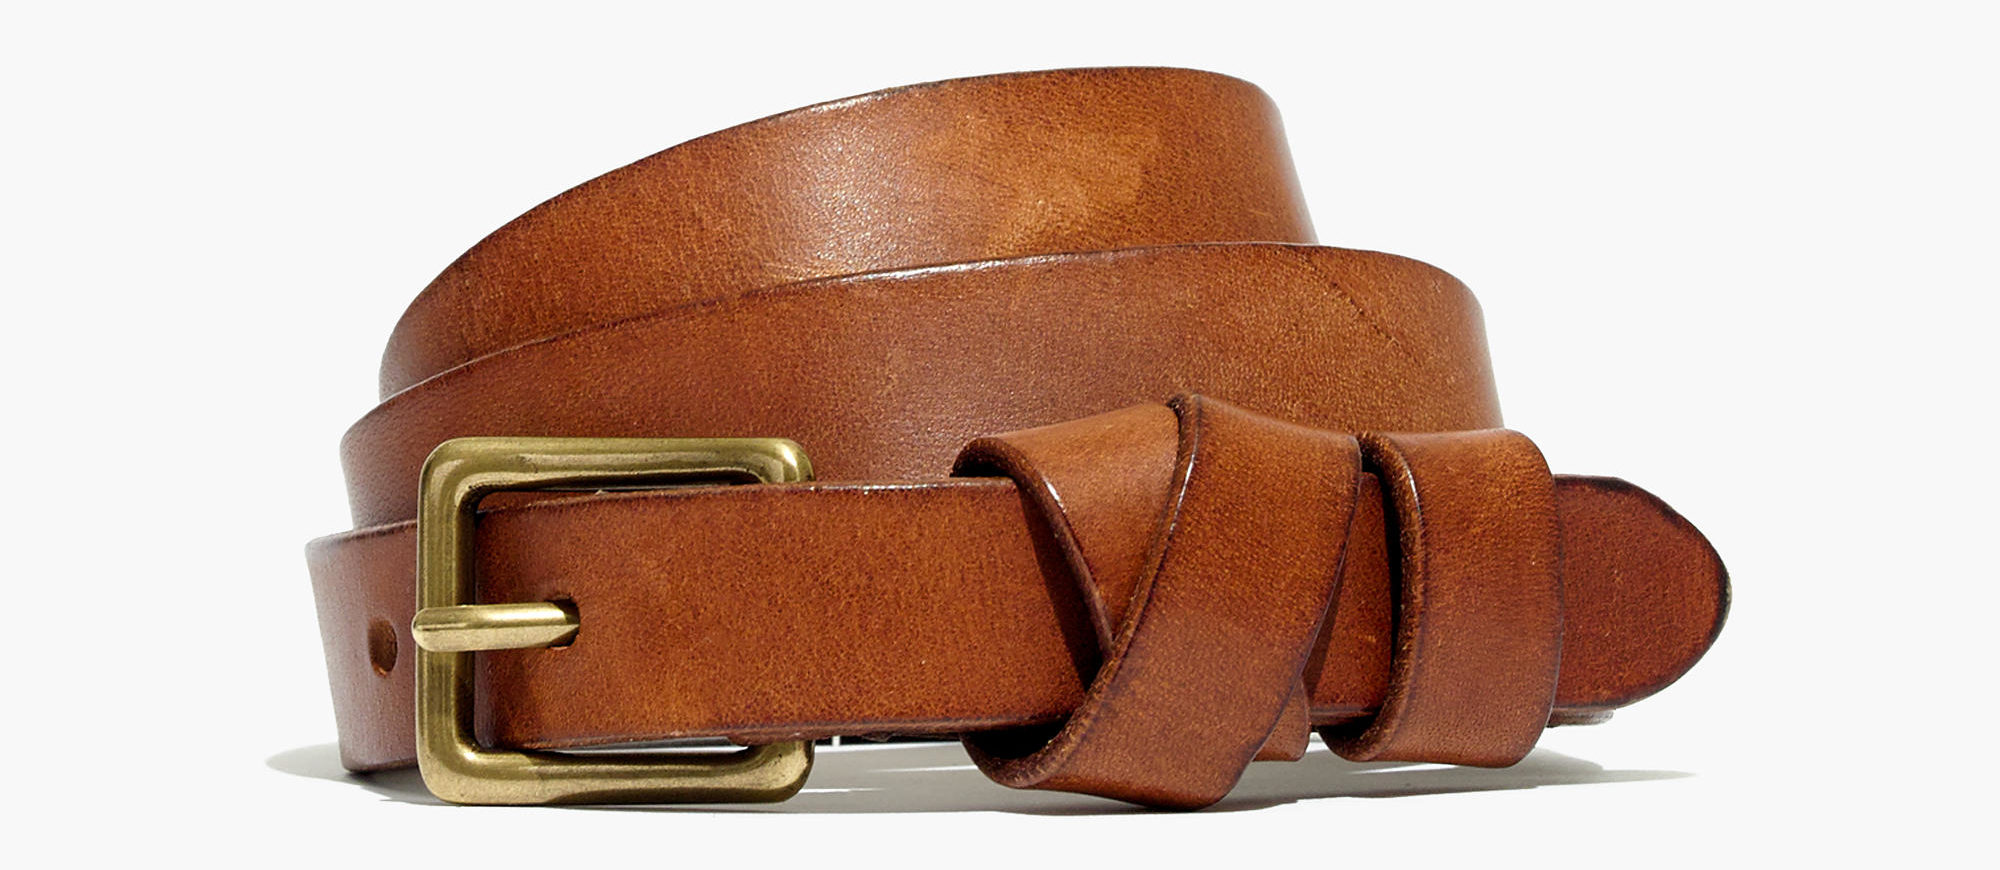 Brown belt from Madewell